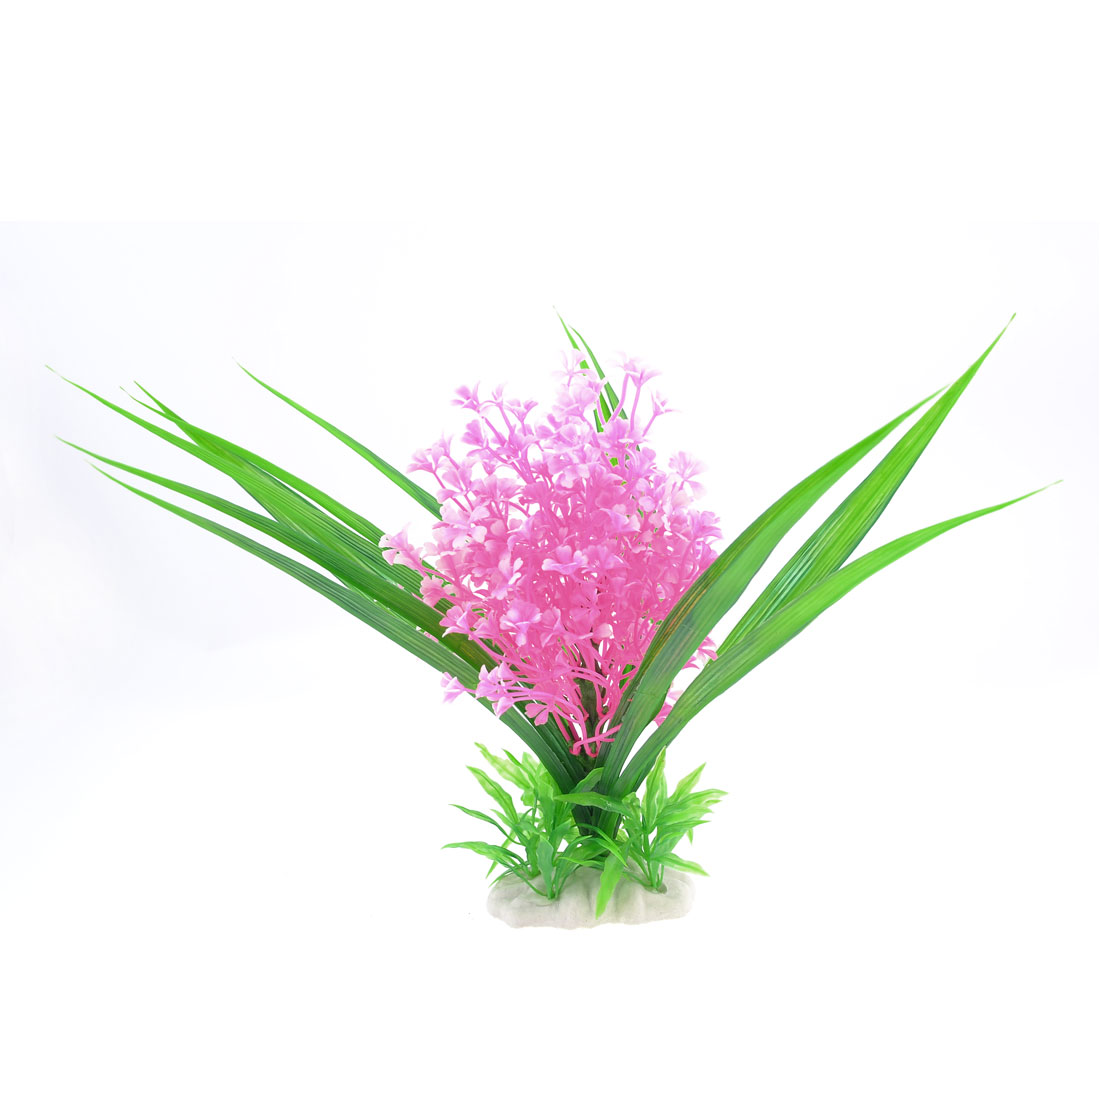 "Pink Green Aquarium Simulation Plastic Aquatic Plant Ornament 11"" High"